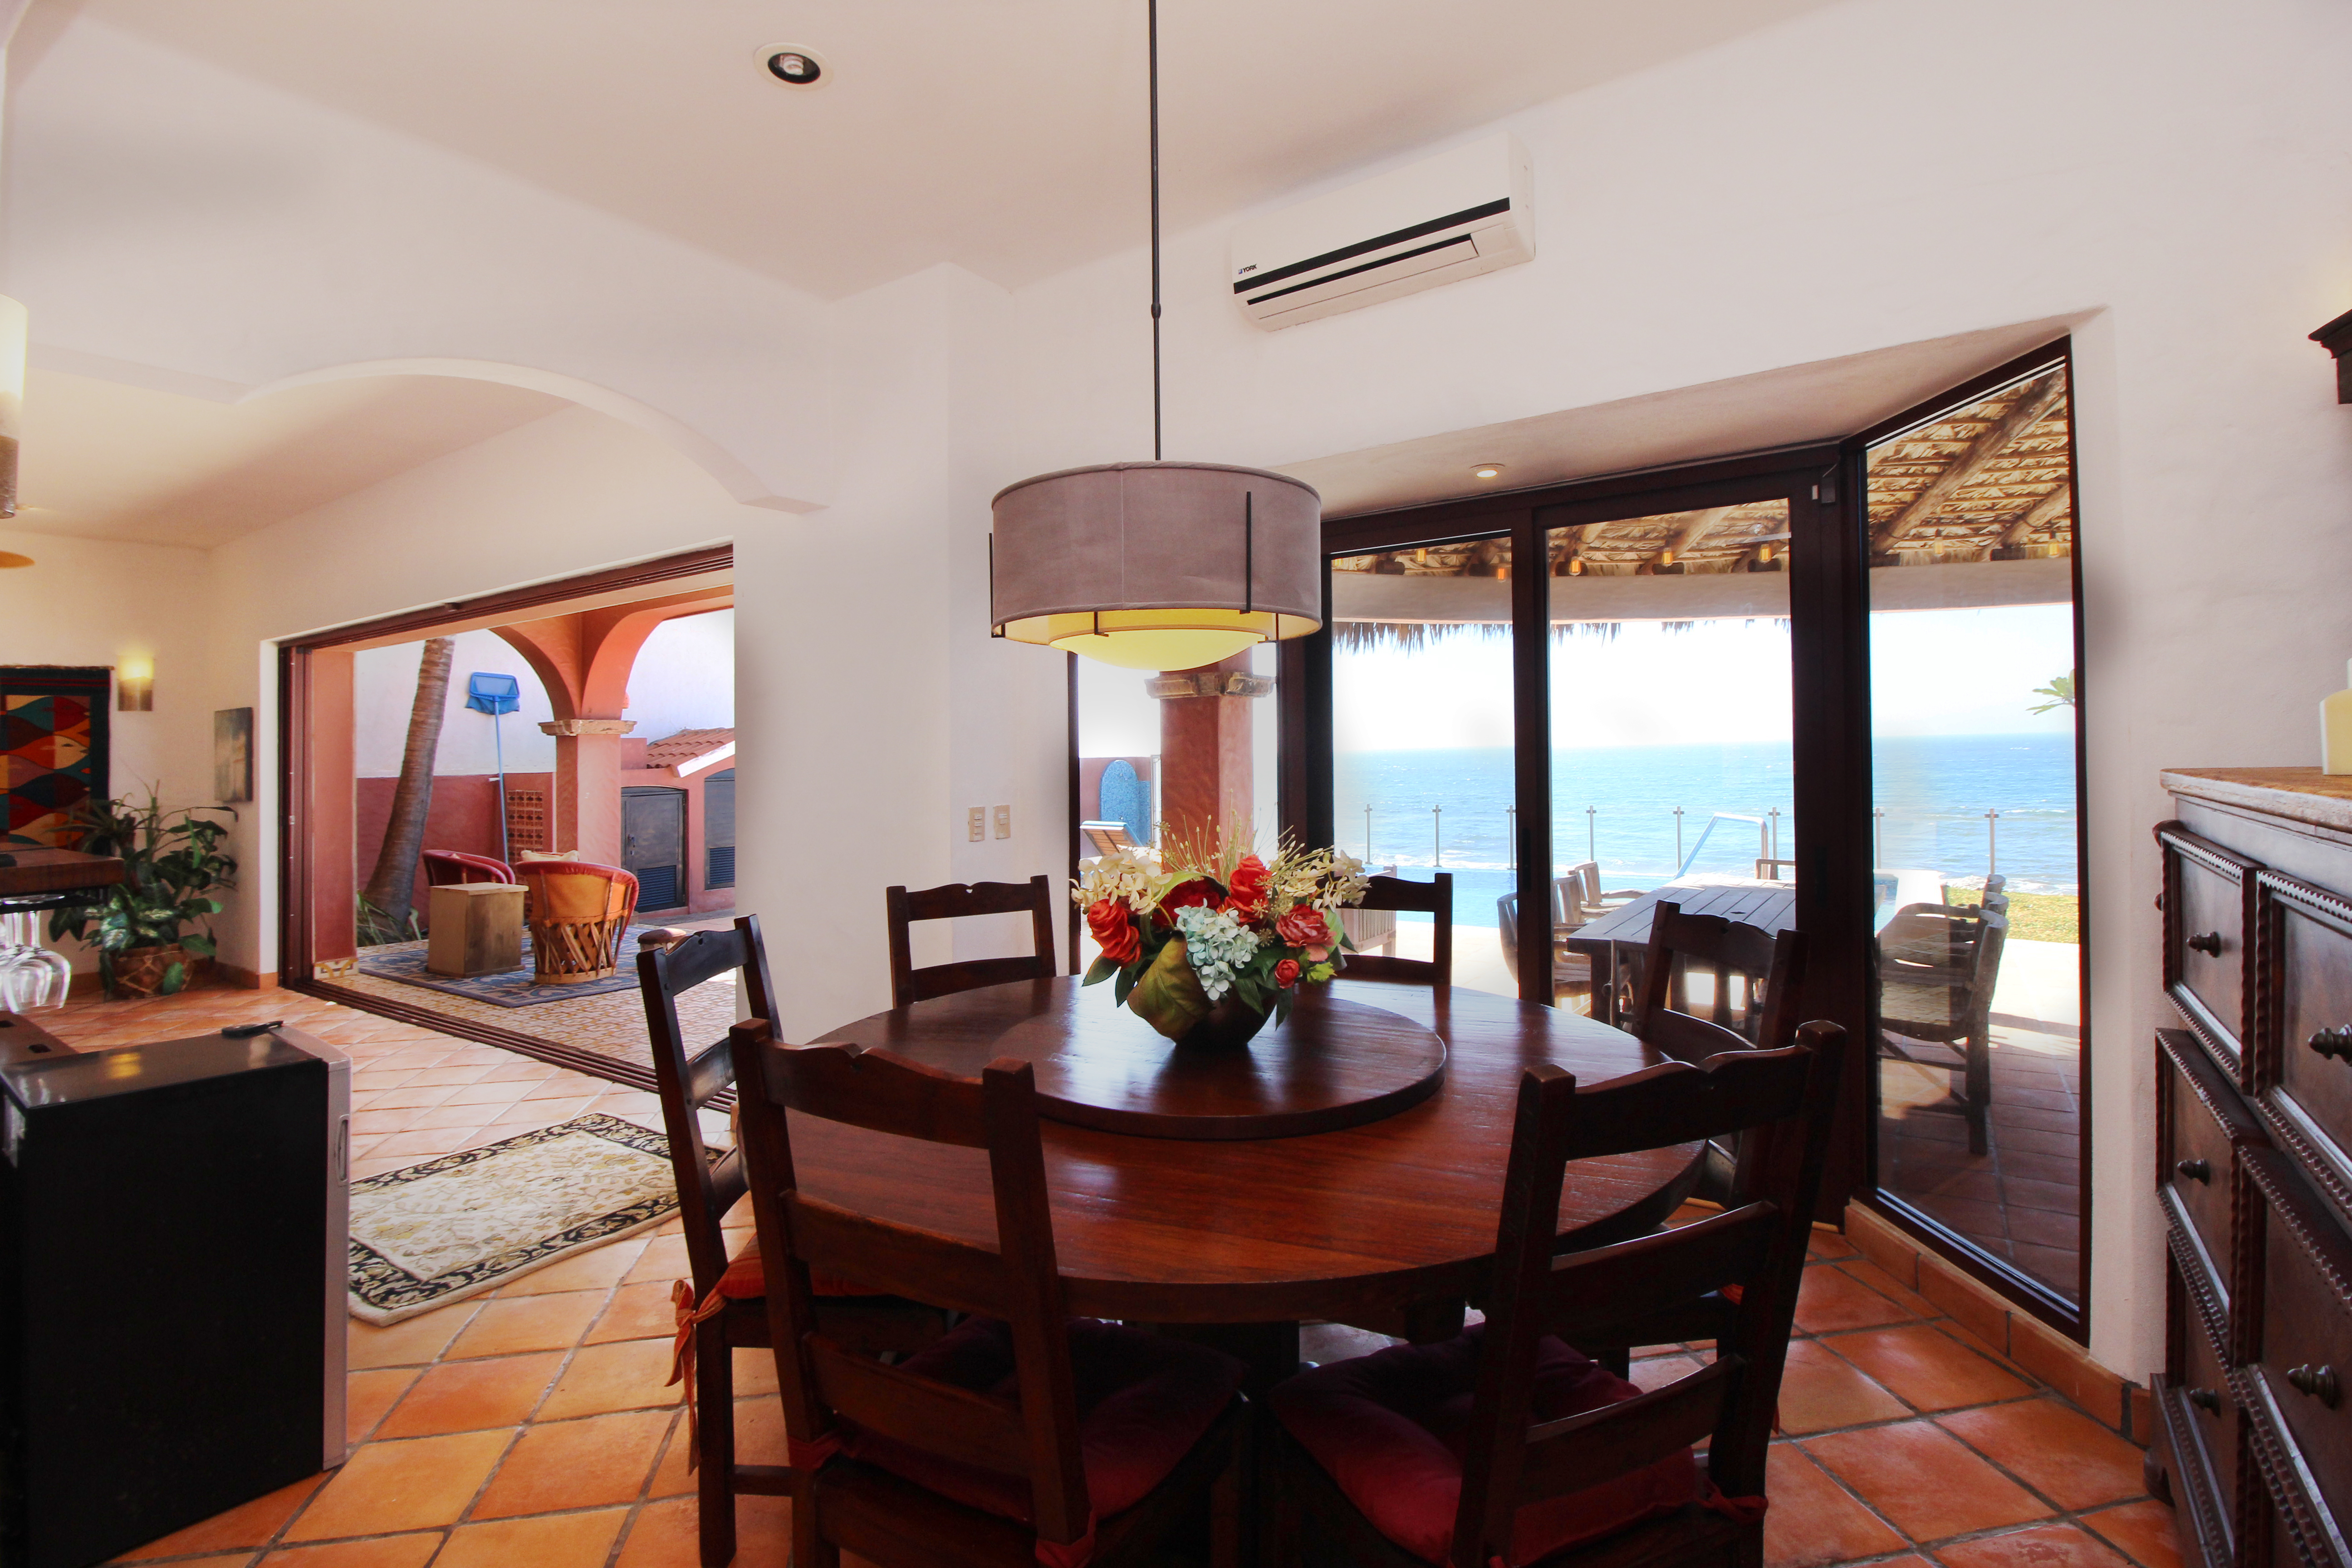 Dining table with ocean views.